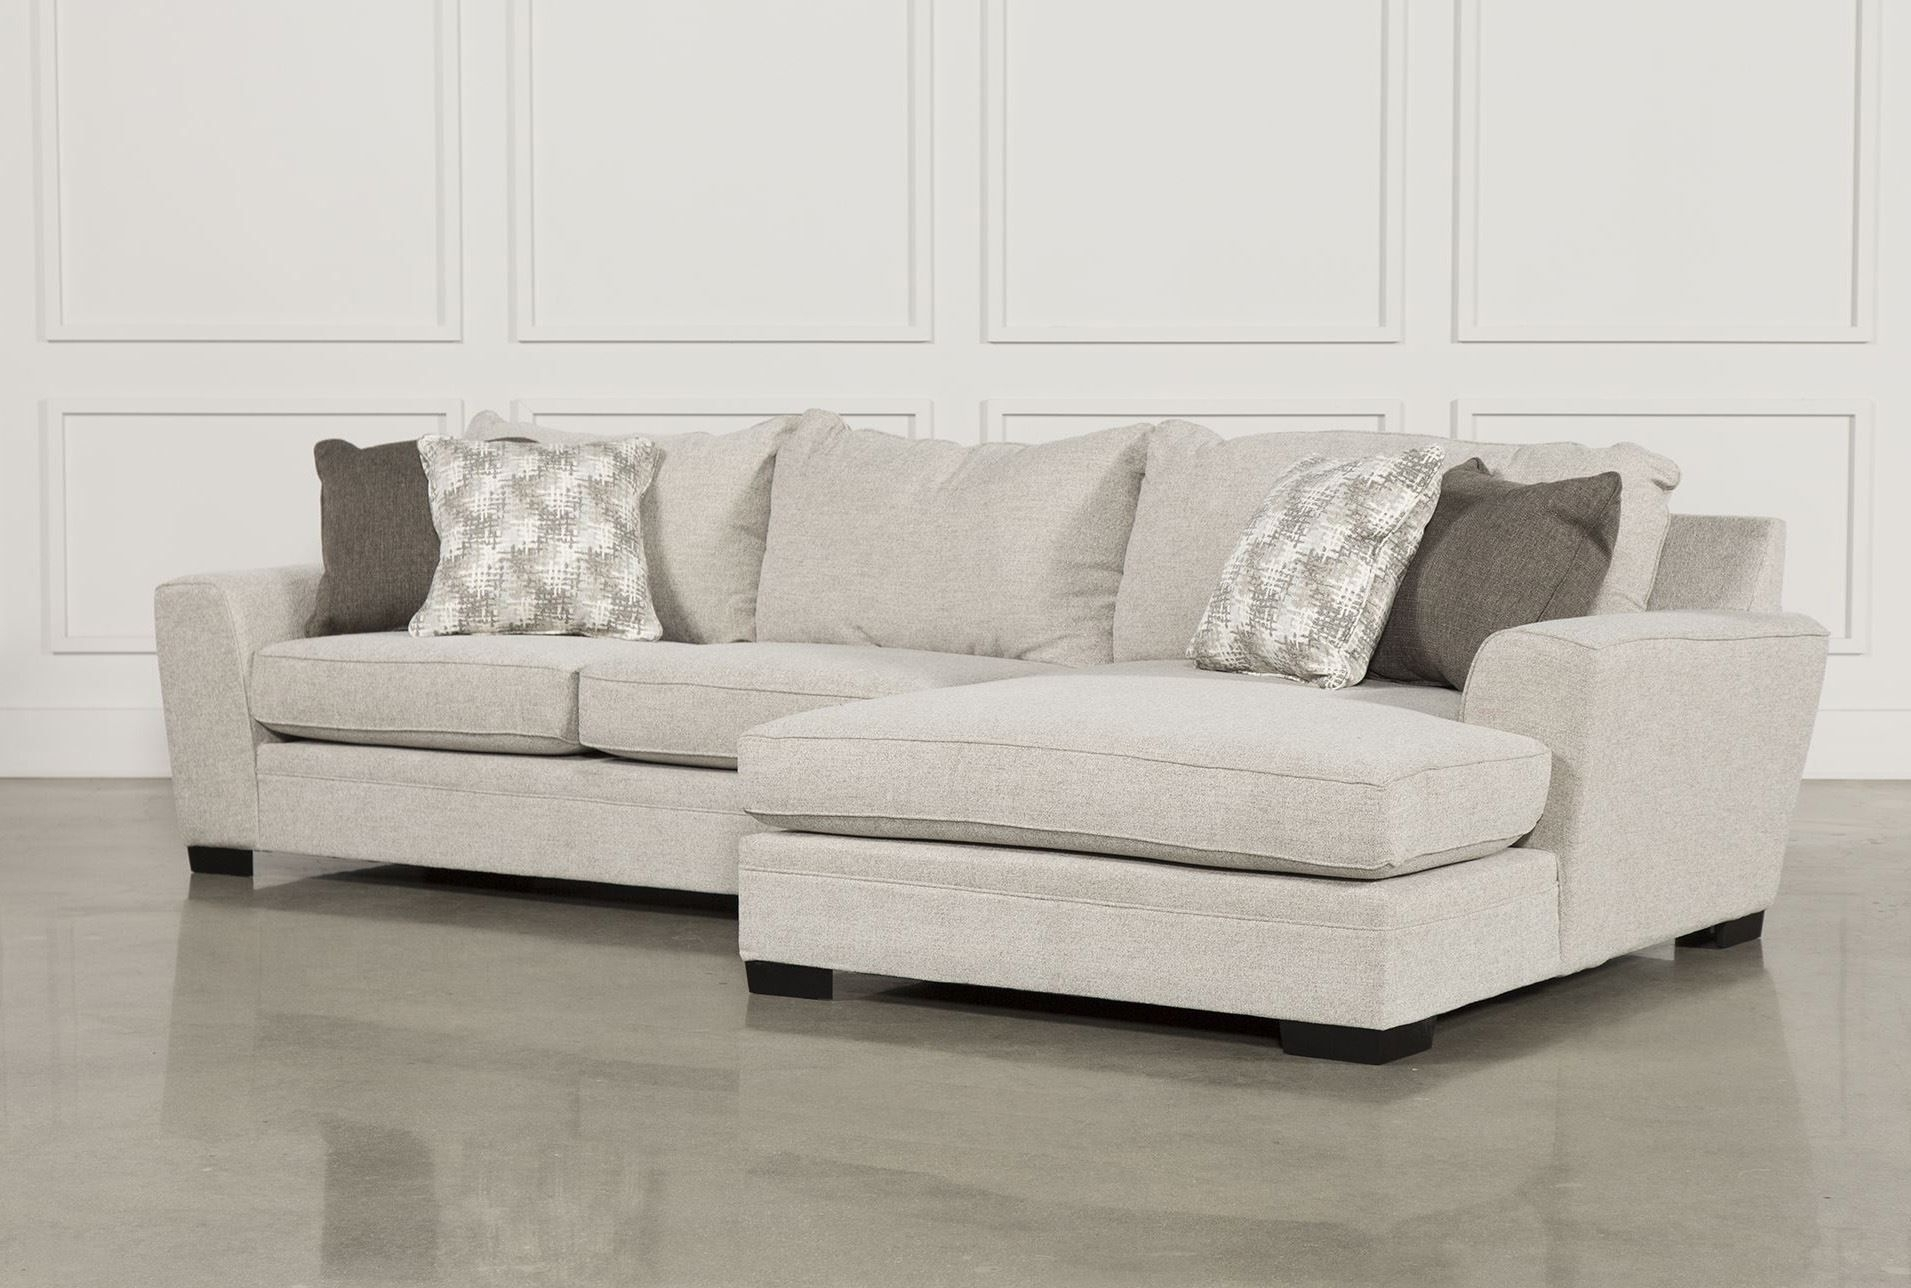 Delano 2 Piece Sectional W/raf Oversized Chaise | Furniture For Malbry Point 3 Piece Sectionals With Laf Chaise (View 12 of 30)